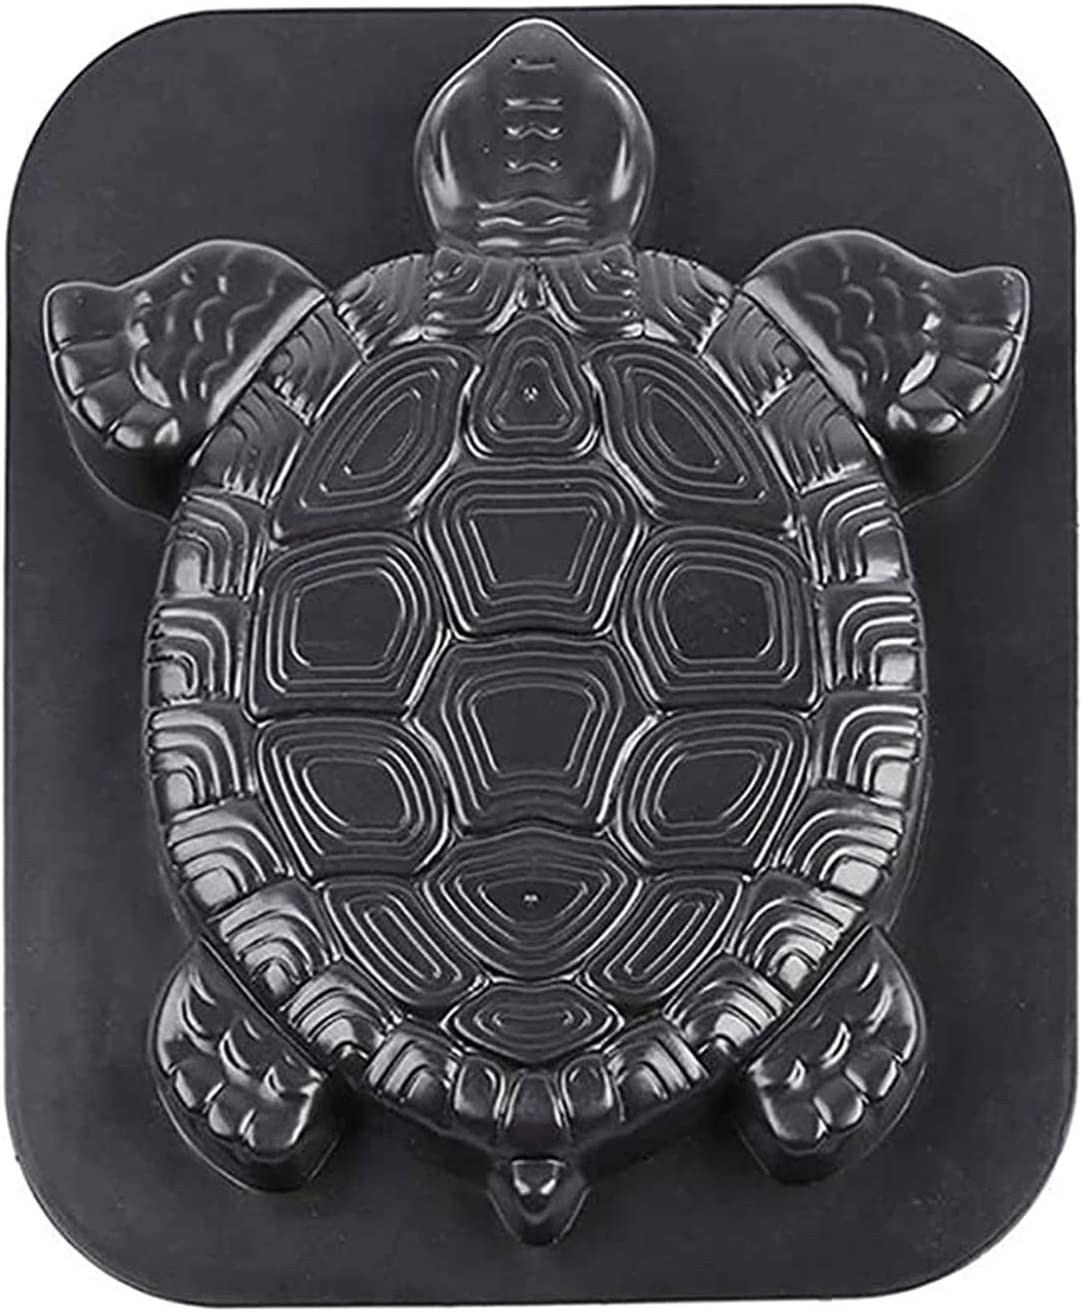 Pathway Stone Mould, Garden Sea Turtle Shape Tortoise Paving Mould, for Making Stepping Stones